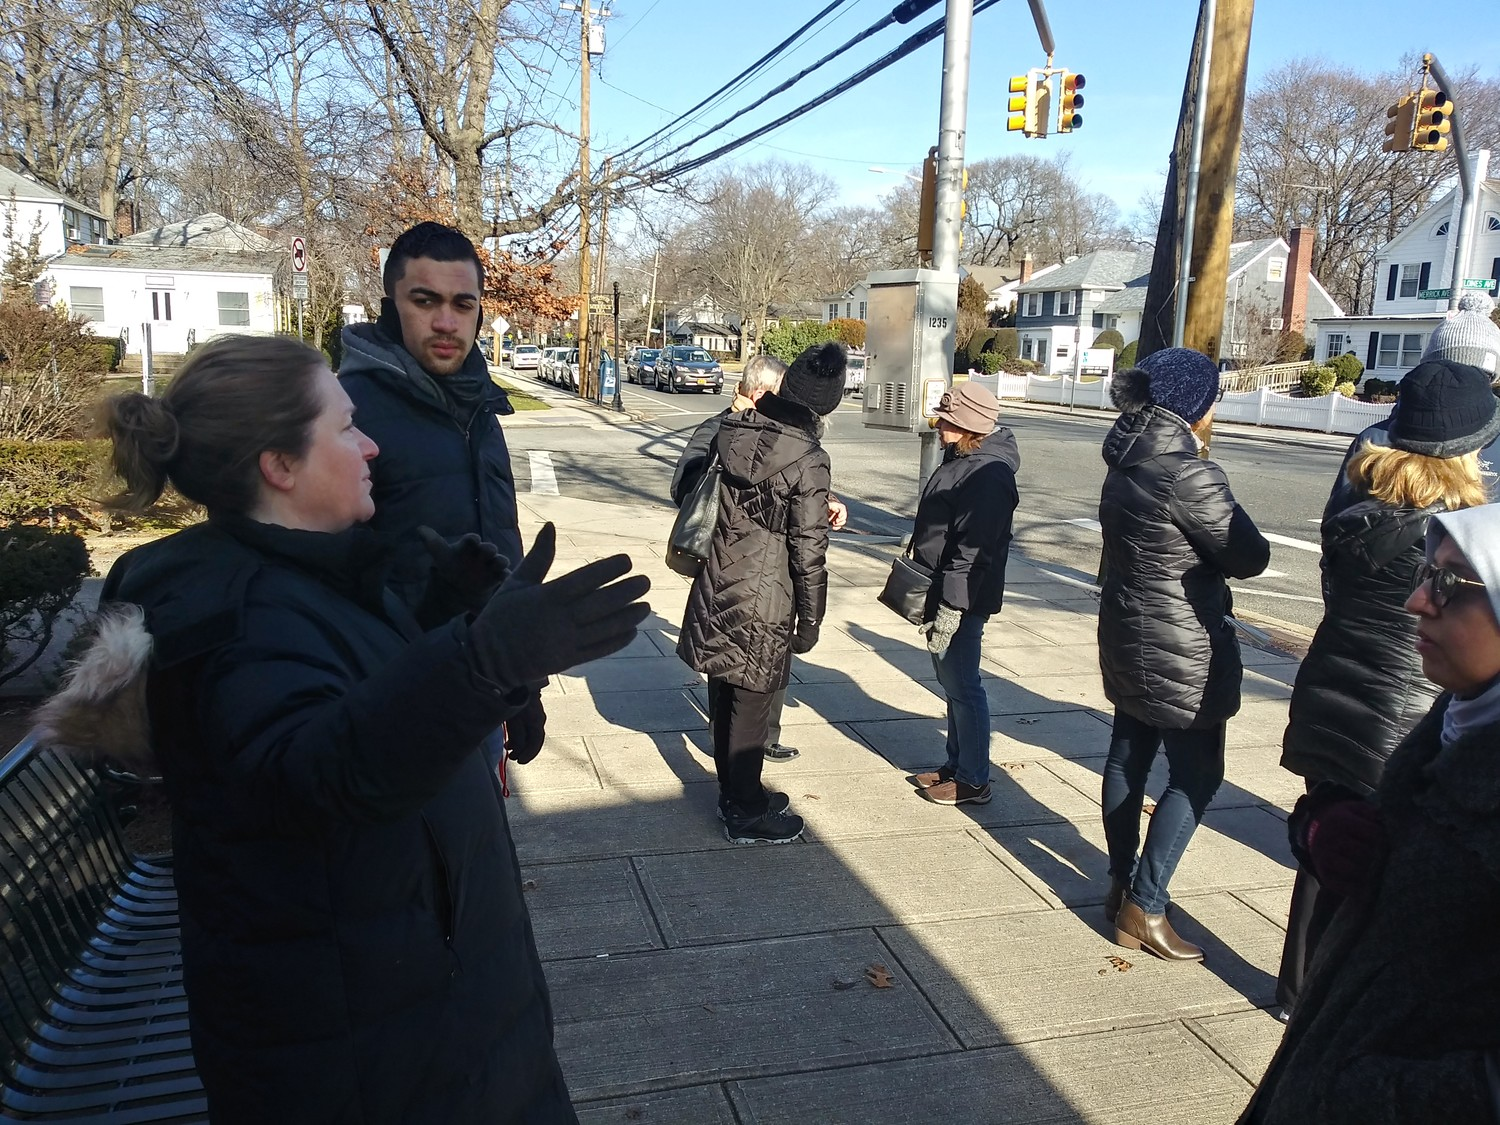 Erin Donohue, at left above, led a walk-through of Merrick Avenue as Nassau County continues its push to reduce the number of lanes on Grand Avenue in Baldwin, which would give it a look similar to Merrick's downtown corridor.